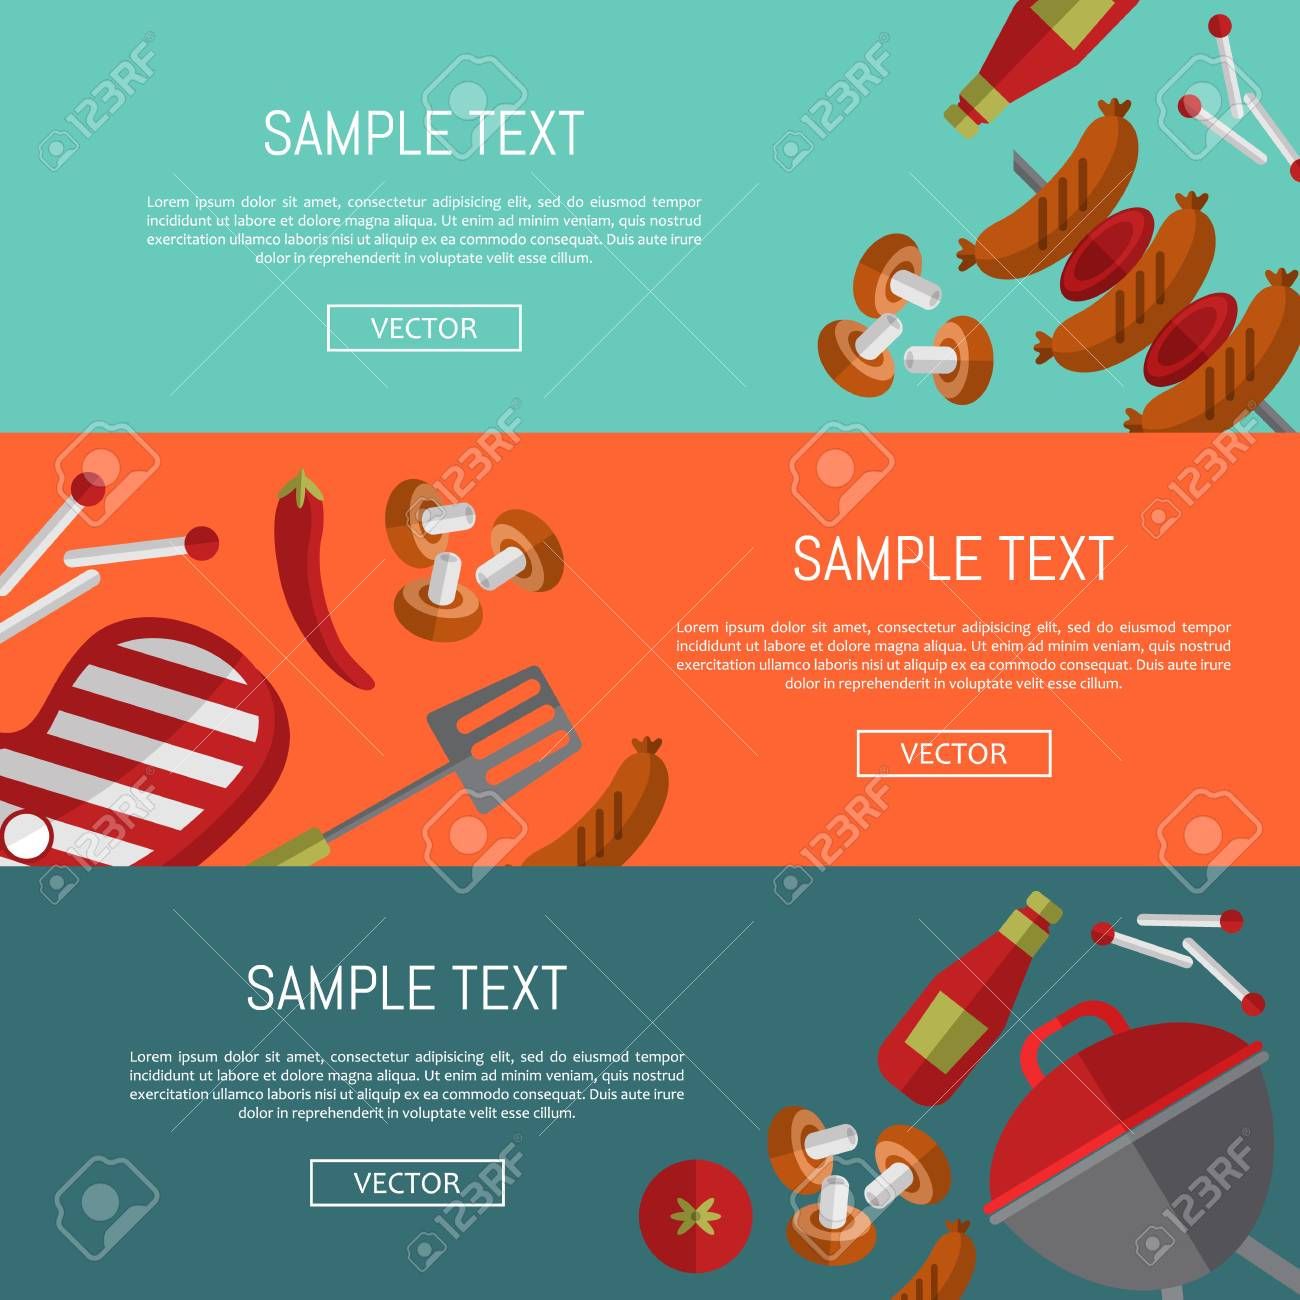 Free templates with horizontal scrolling | website templates blog.